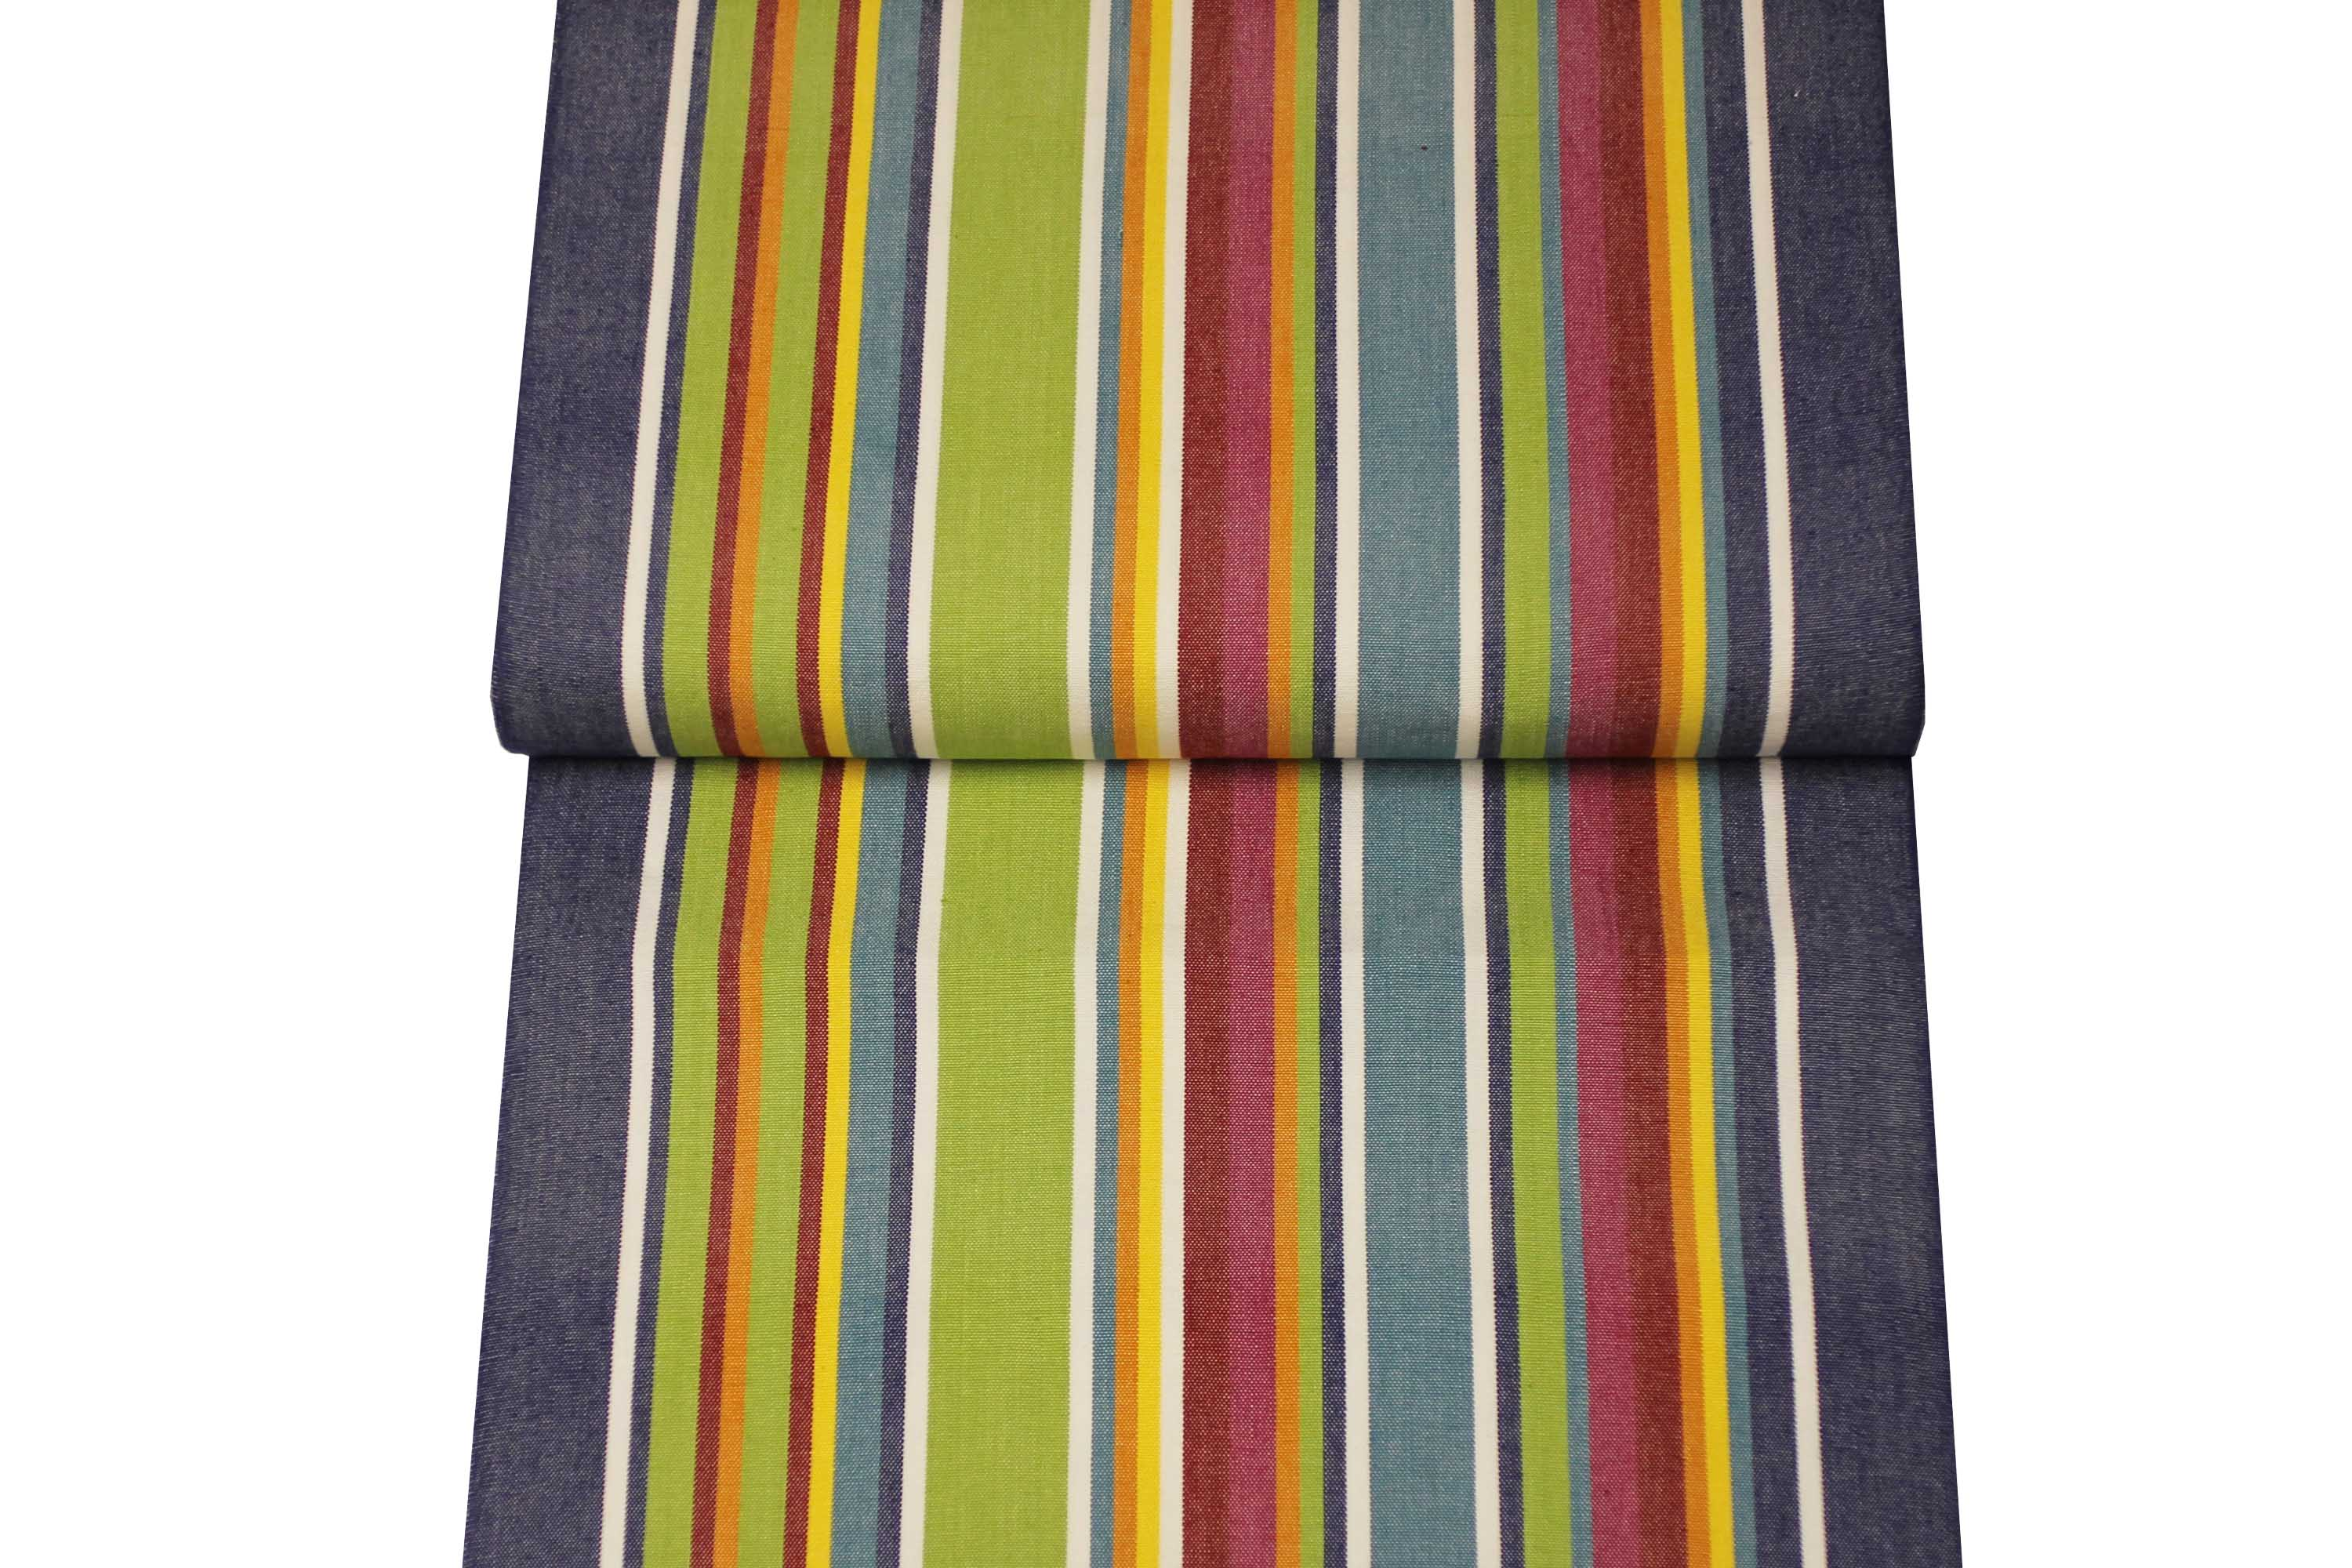 Blue Striped Directors Chair Covers | Climbing